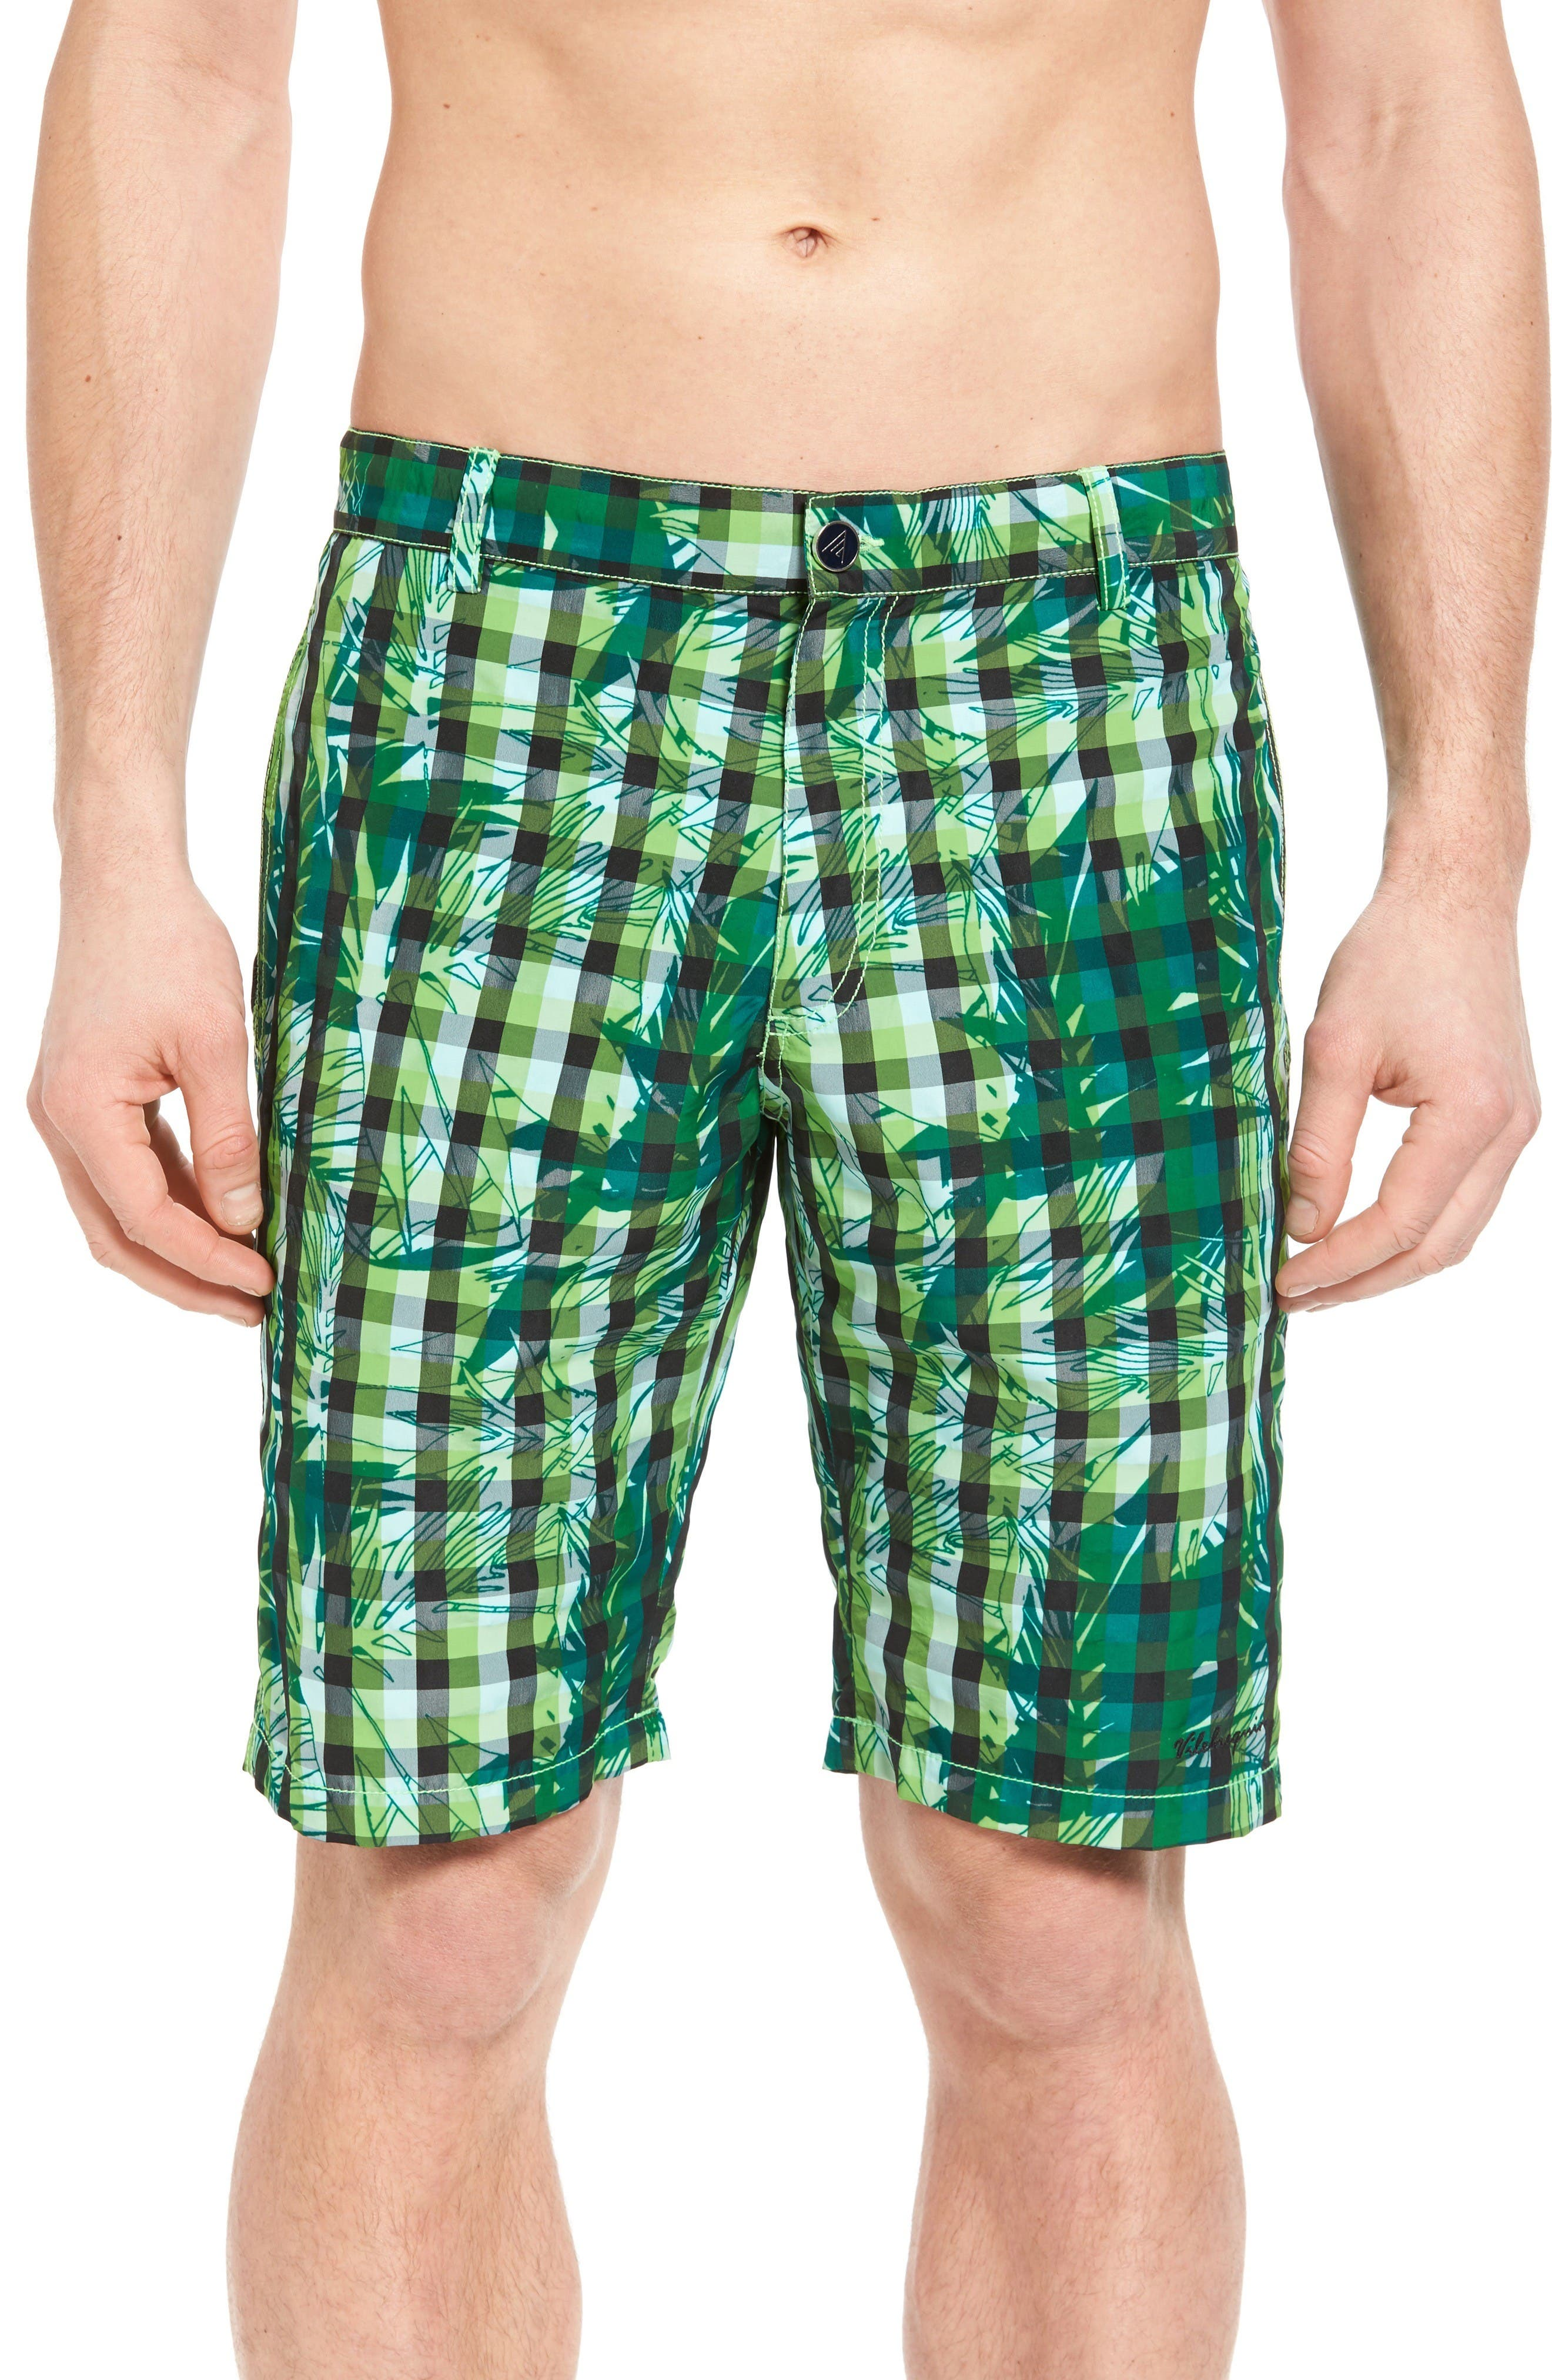 Alternate Image 1 Selected - Vilebrequin Bermuda Swim Trunks